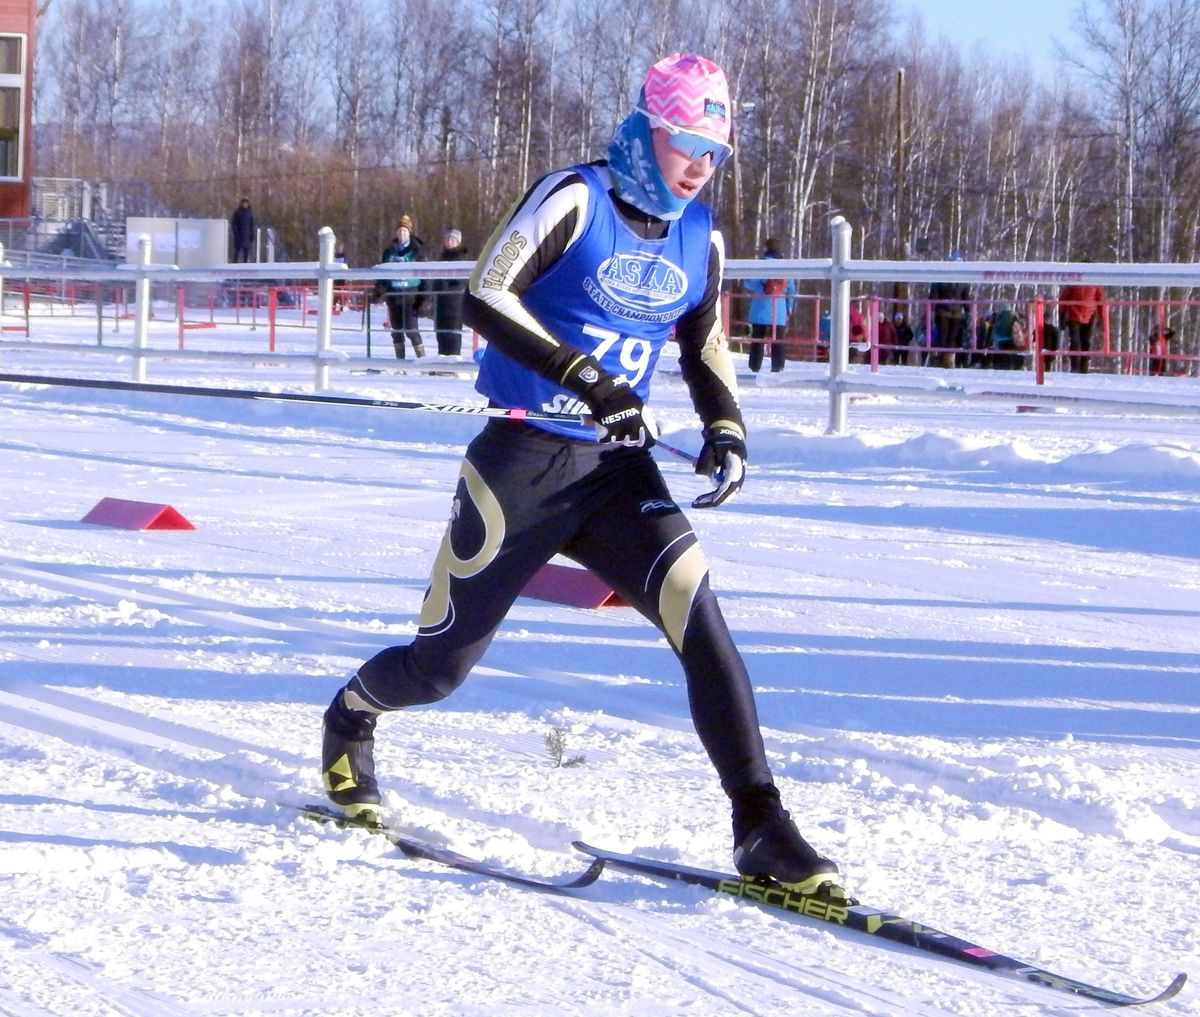 South High senior Zanden McMullen crosses the finish line as a state champion Thursday at Birch Hill Recreation Area in Fairbanks. (Danny Martin / Fairbanks Daily News-Miner)